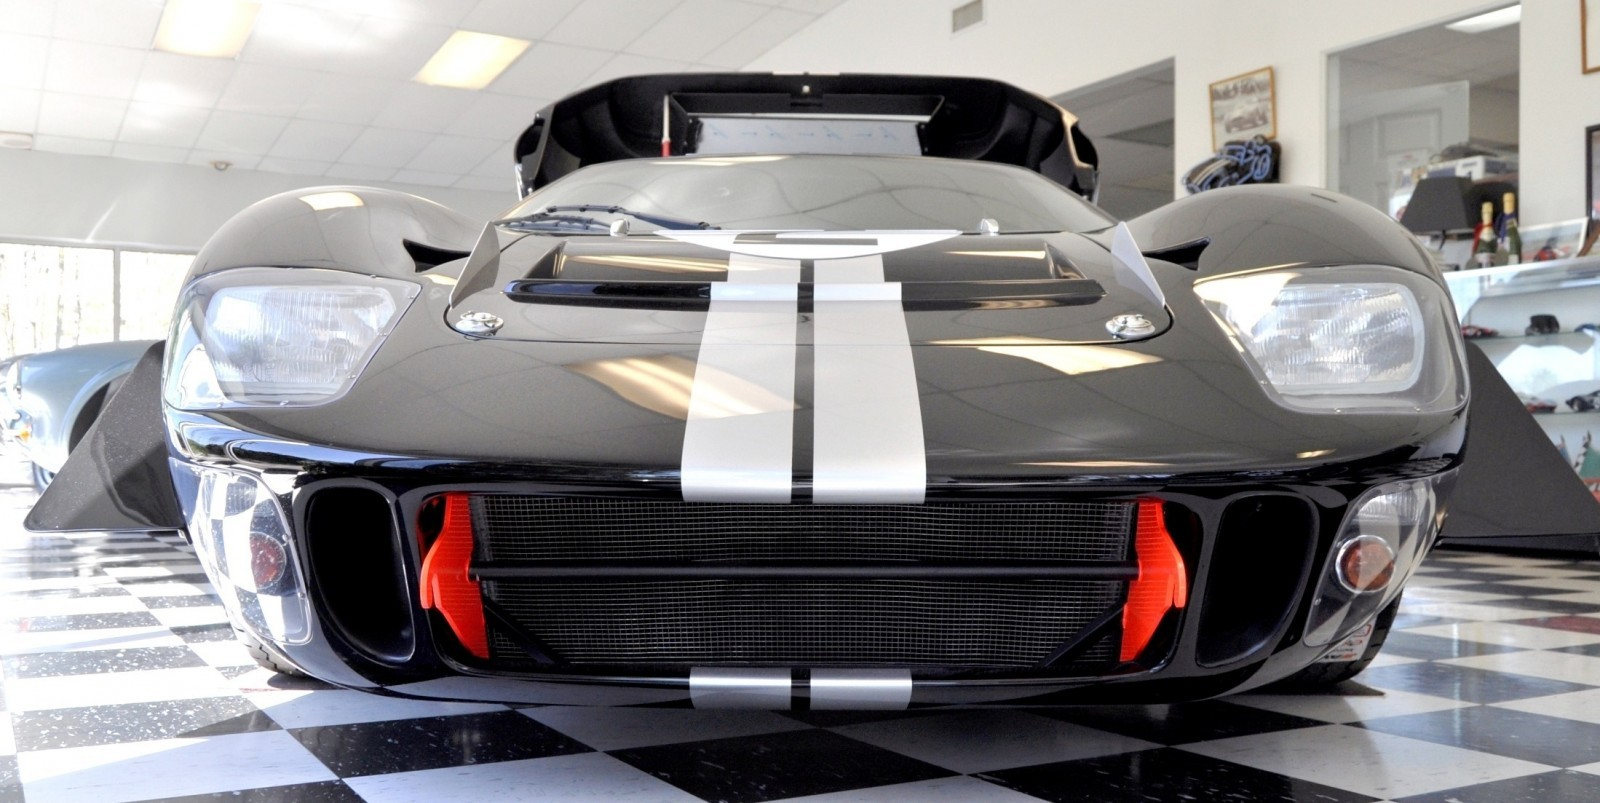 Touring the Olthoff Racing Dream Factory - Superformance GT40s and Cobras Galore 2